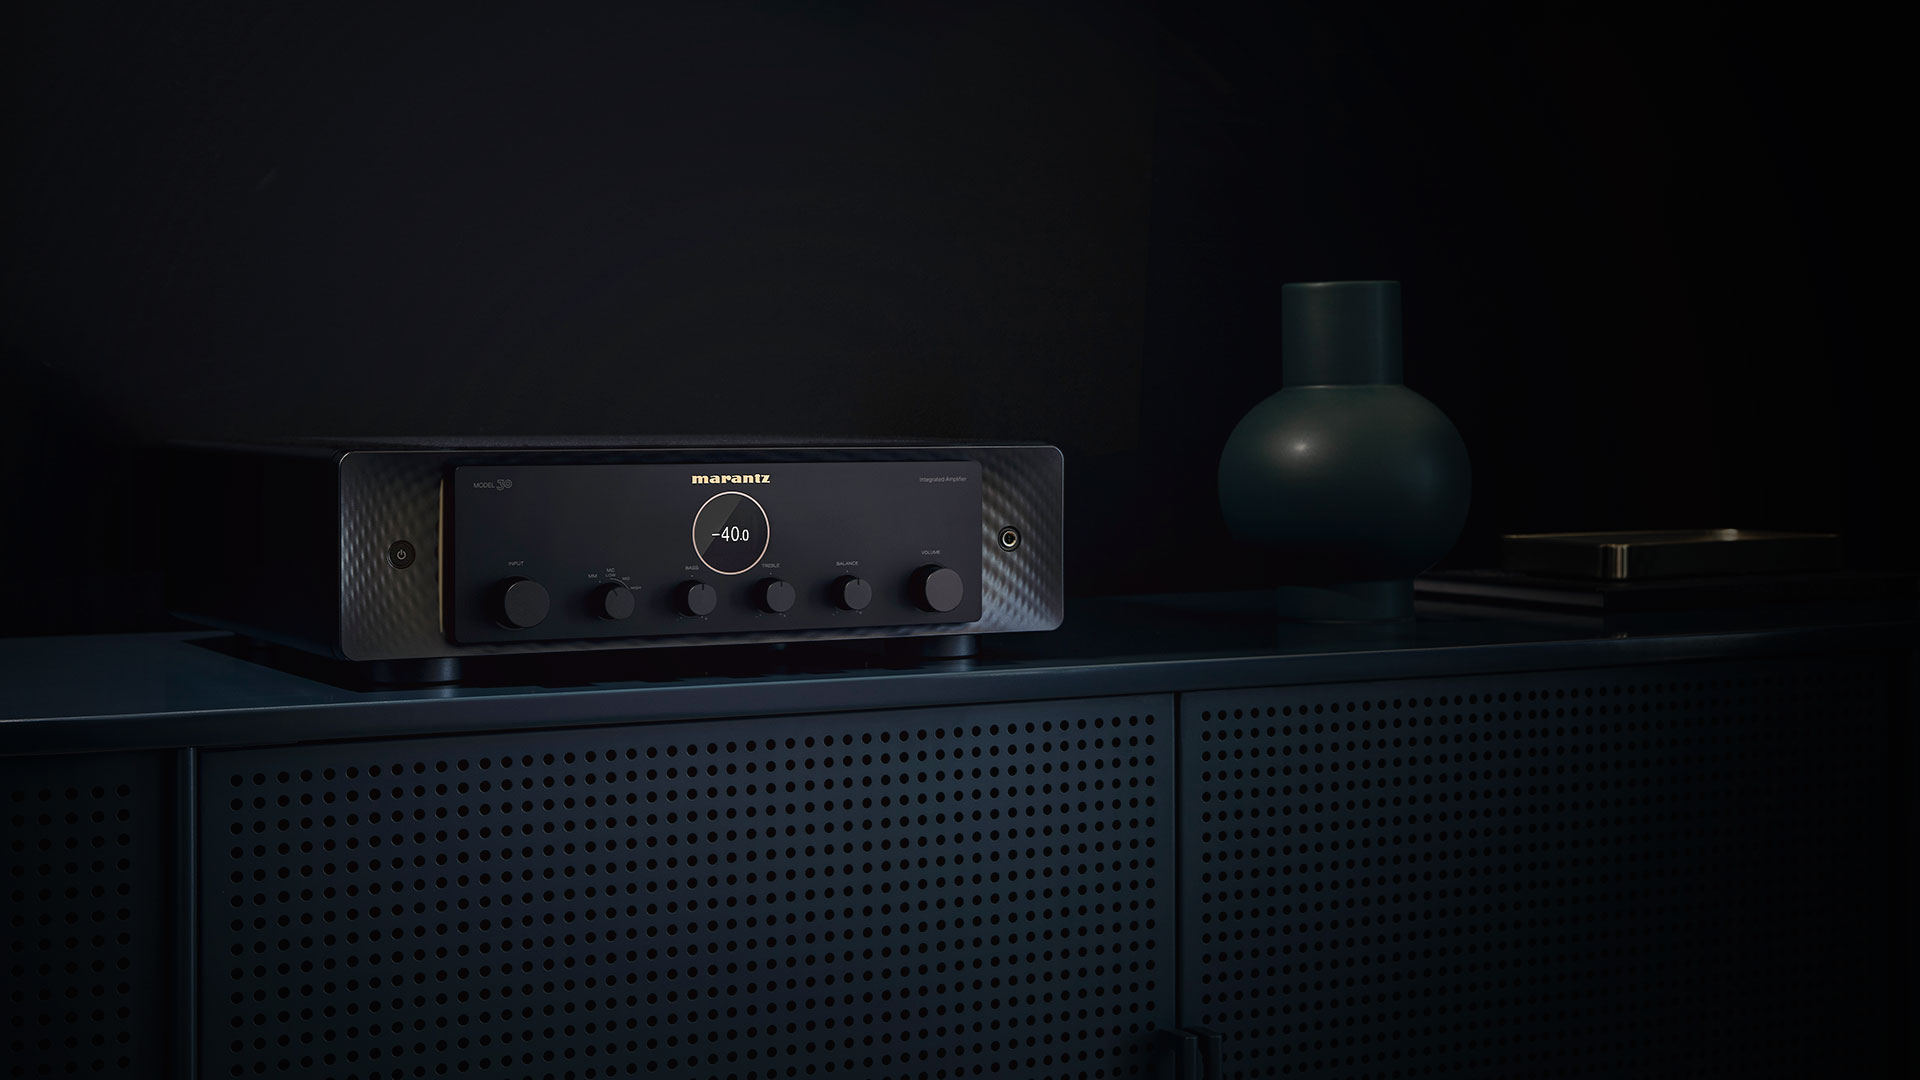 Marantz Model 30 Integrated Amplifier | Unilet Sound & Vision